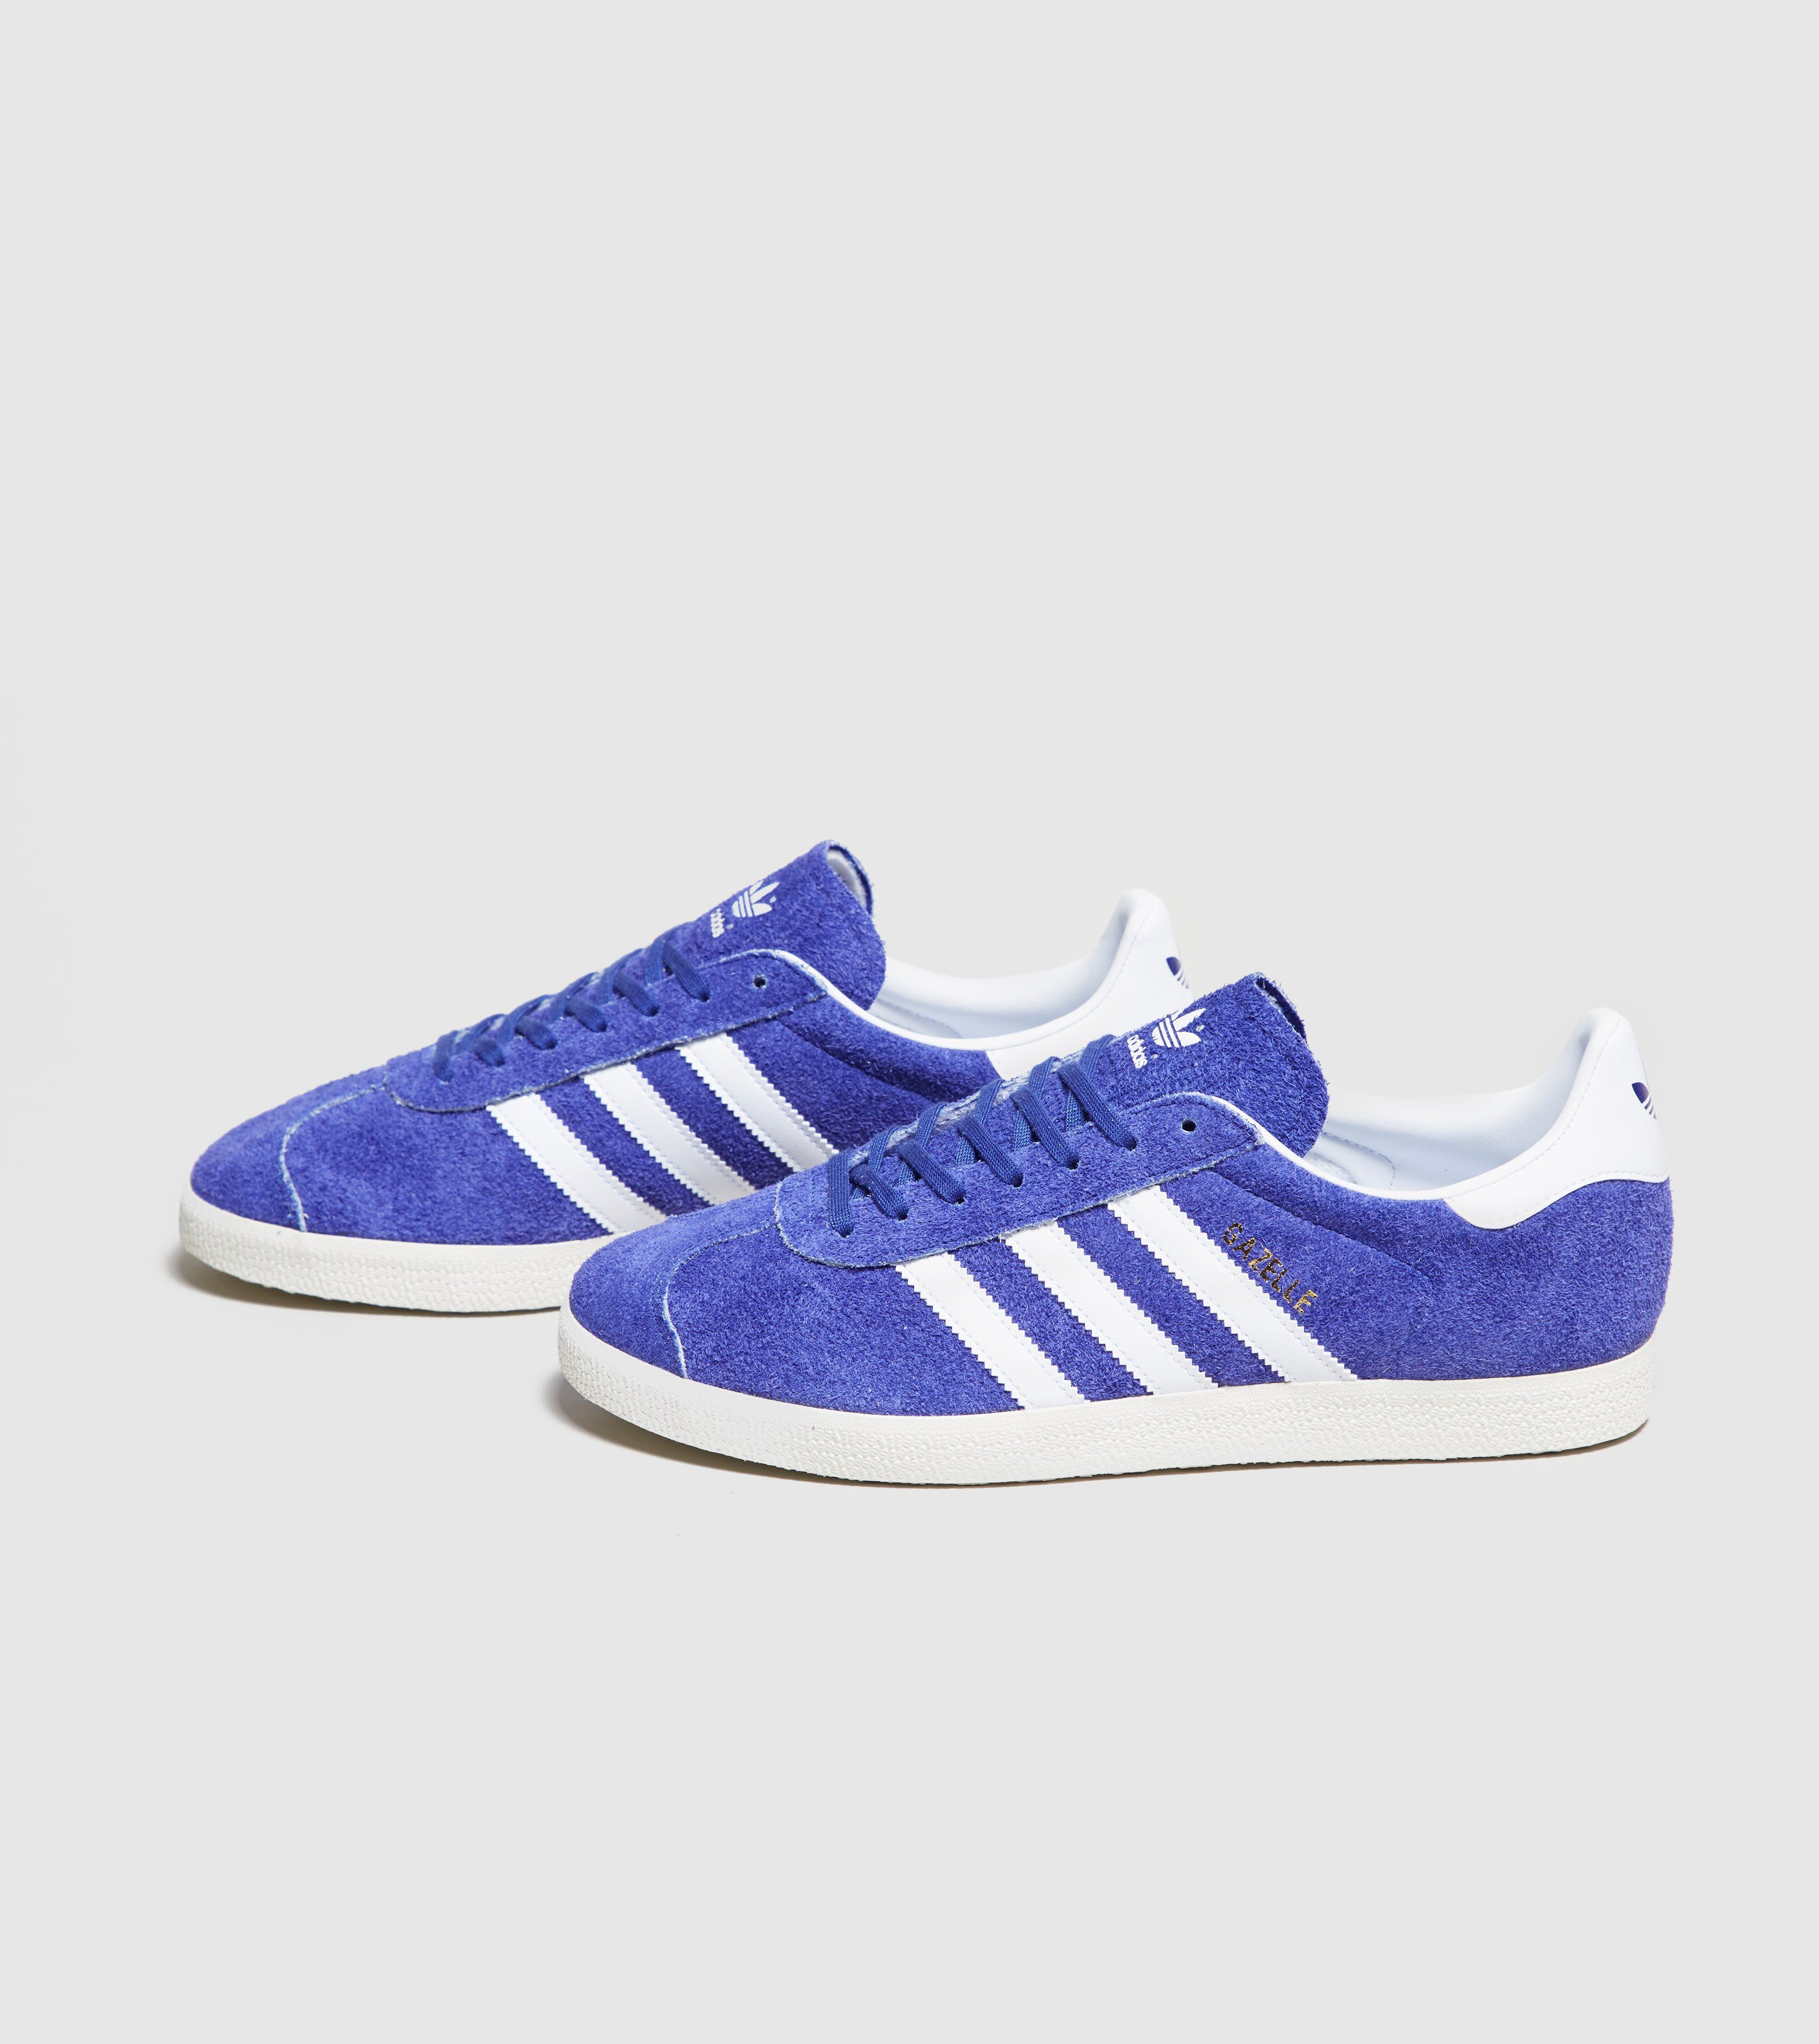 adidas Originals Gazelle HS